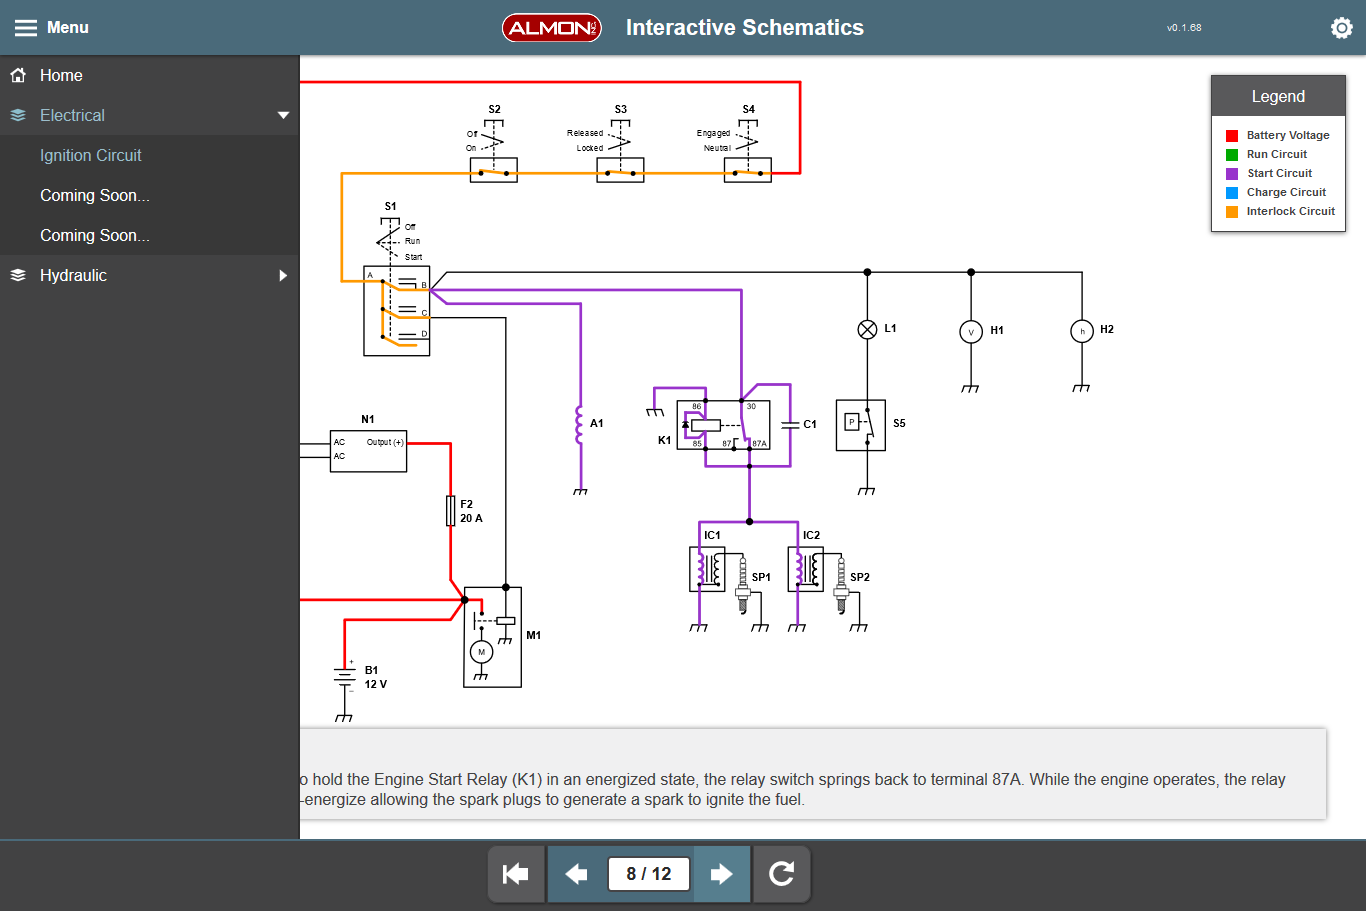 Interactive Schematics